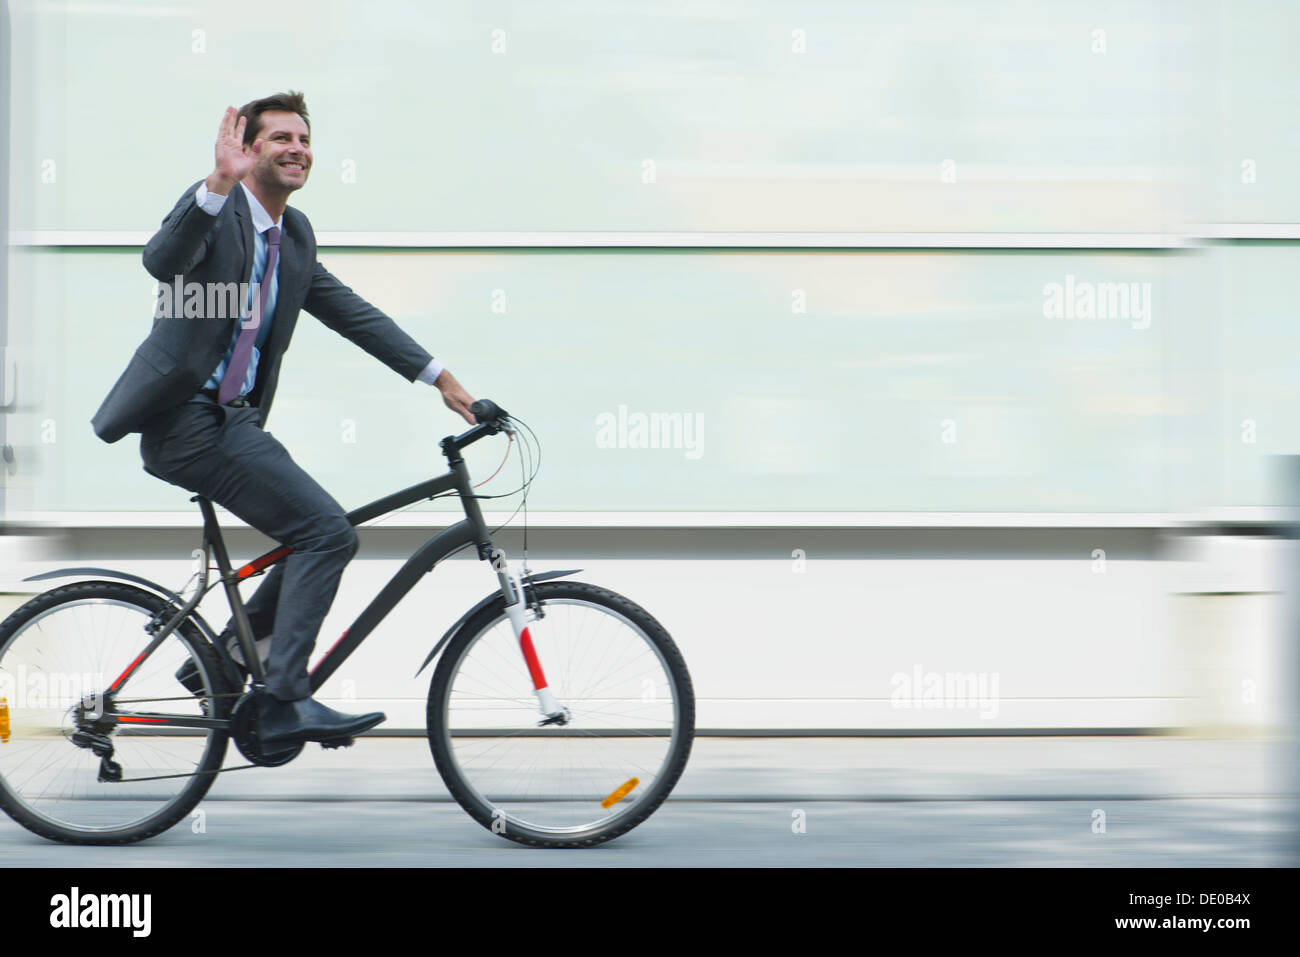 Businessman riding bicycle Photo Stock